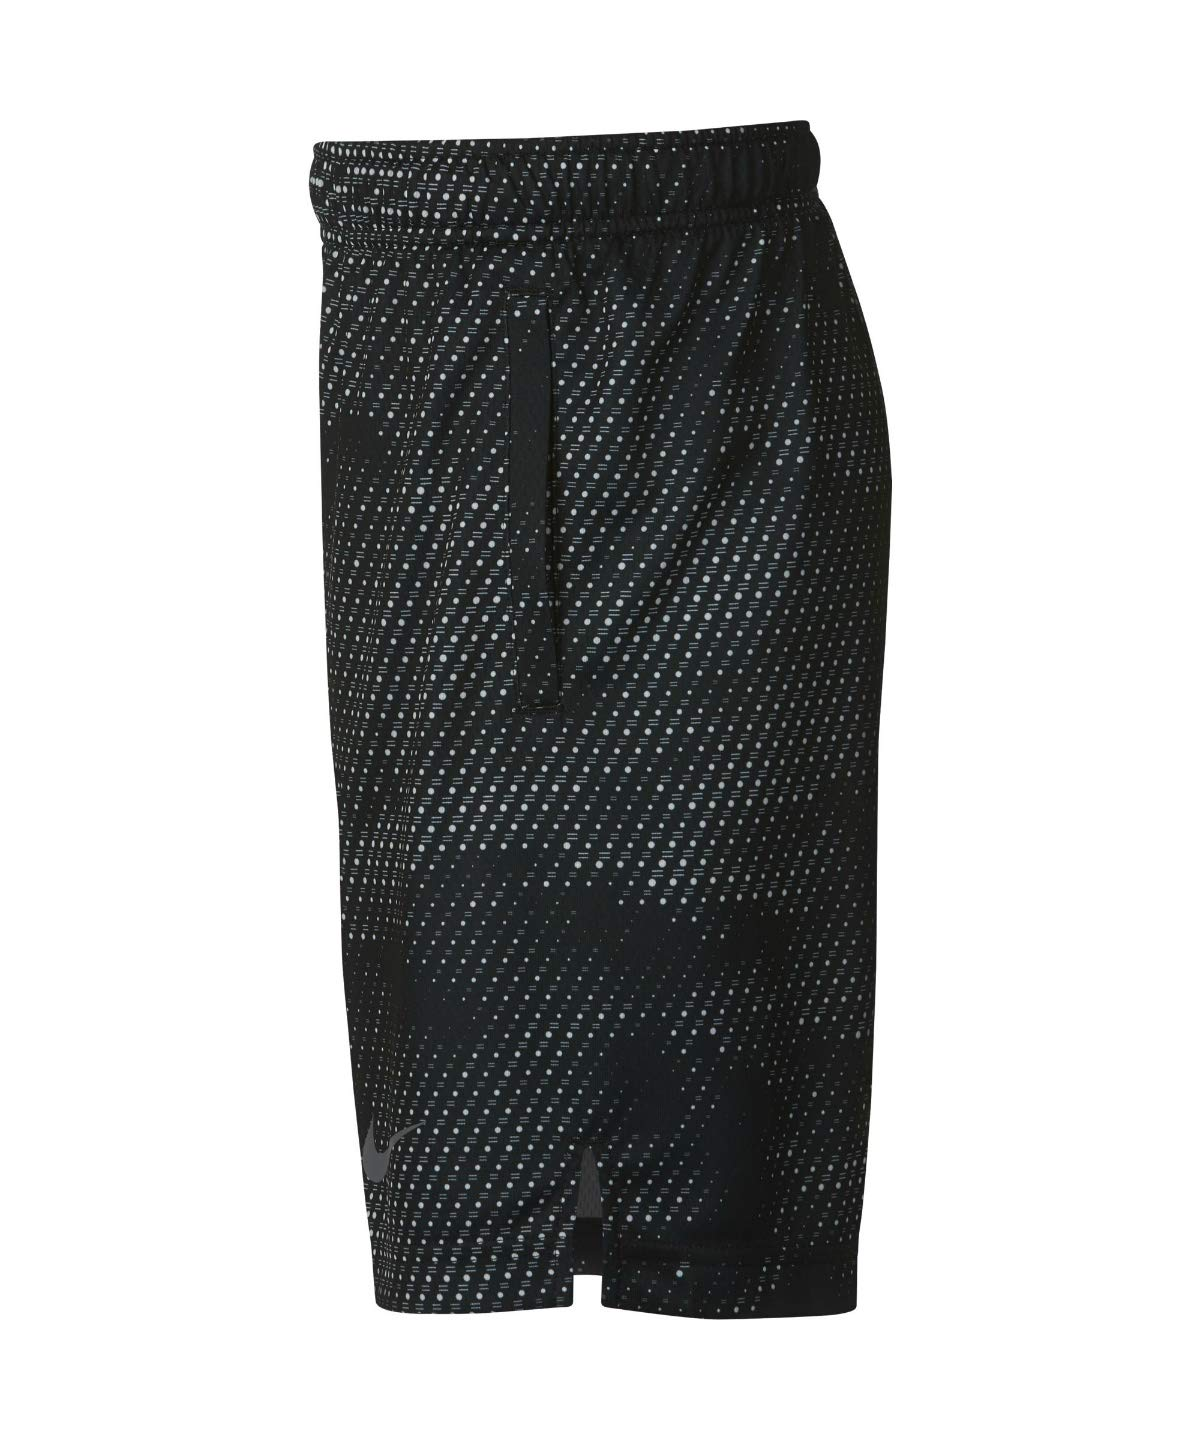 Nike Boy's Athletic Dry Printed Fly Comfortable Elastic Training Shorts with Pockets (Black/Small) by Nike (Image #3)